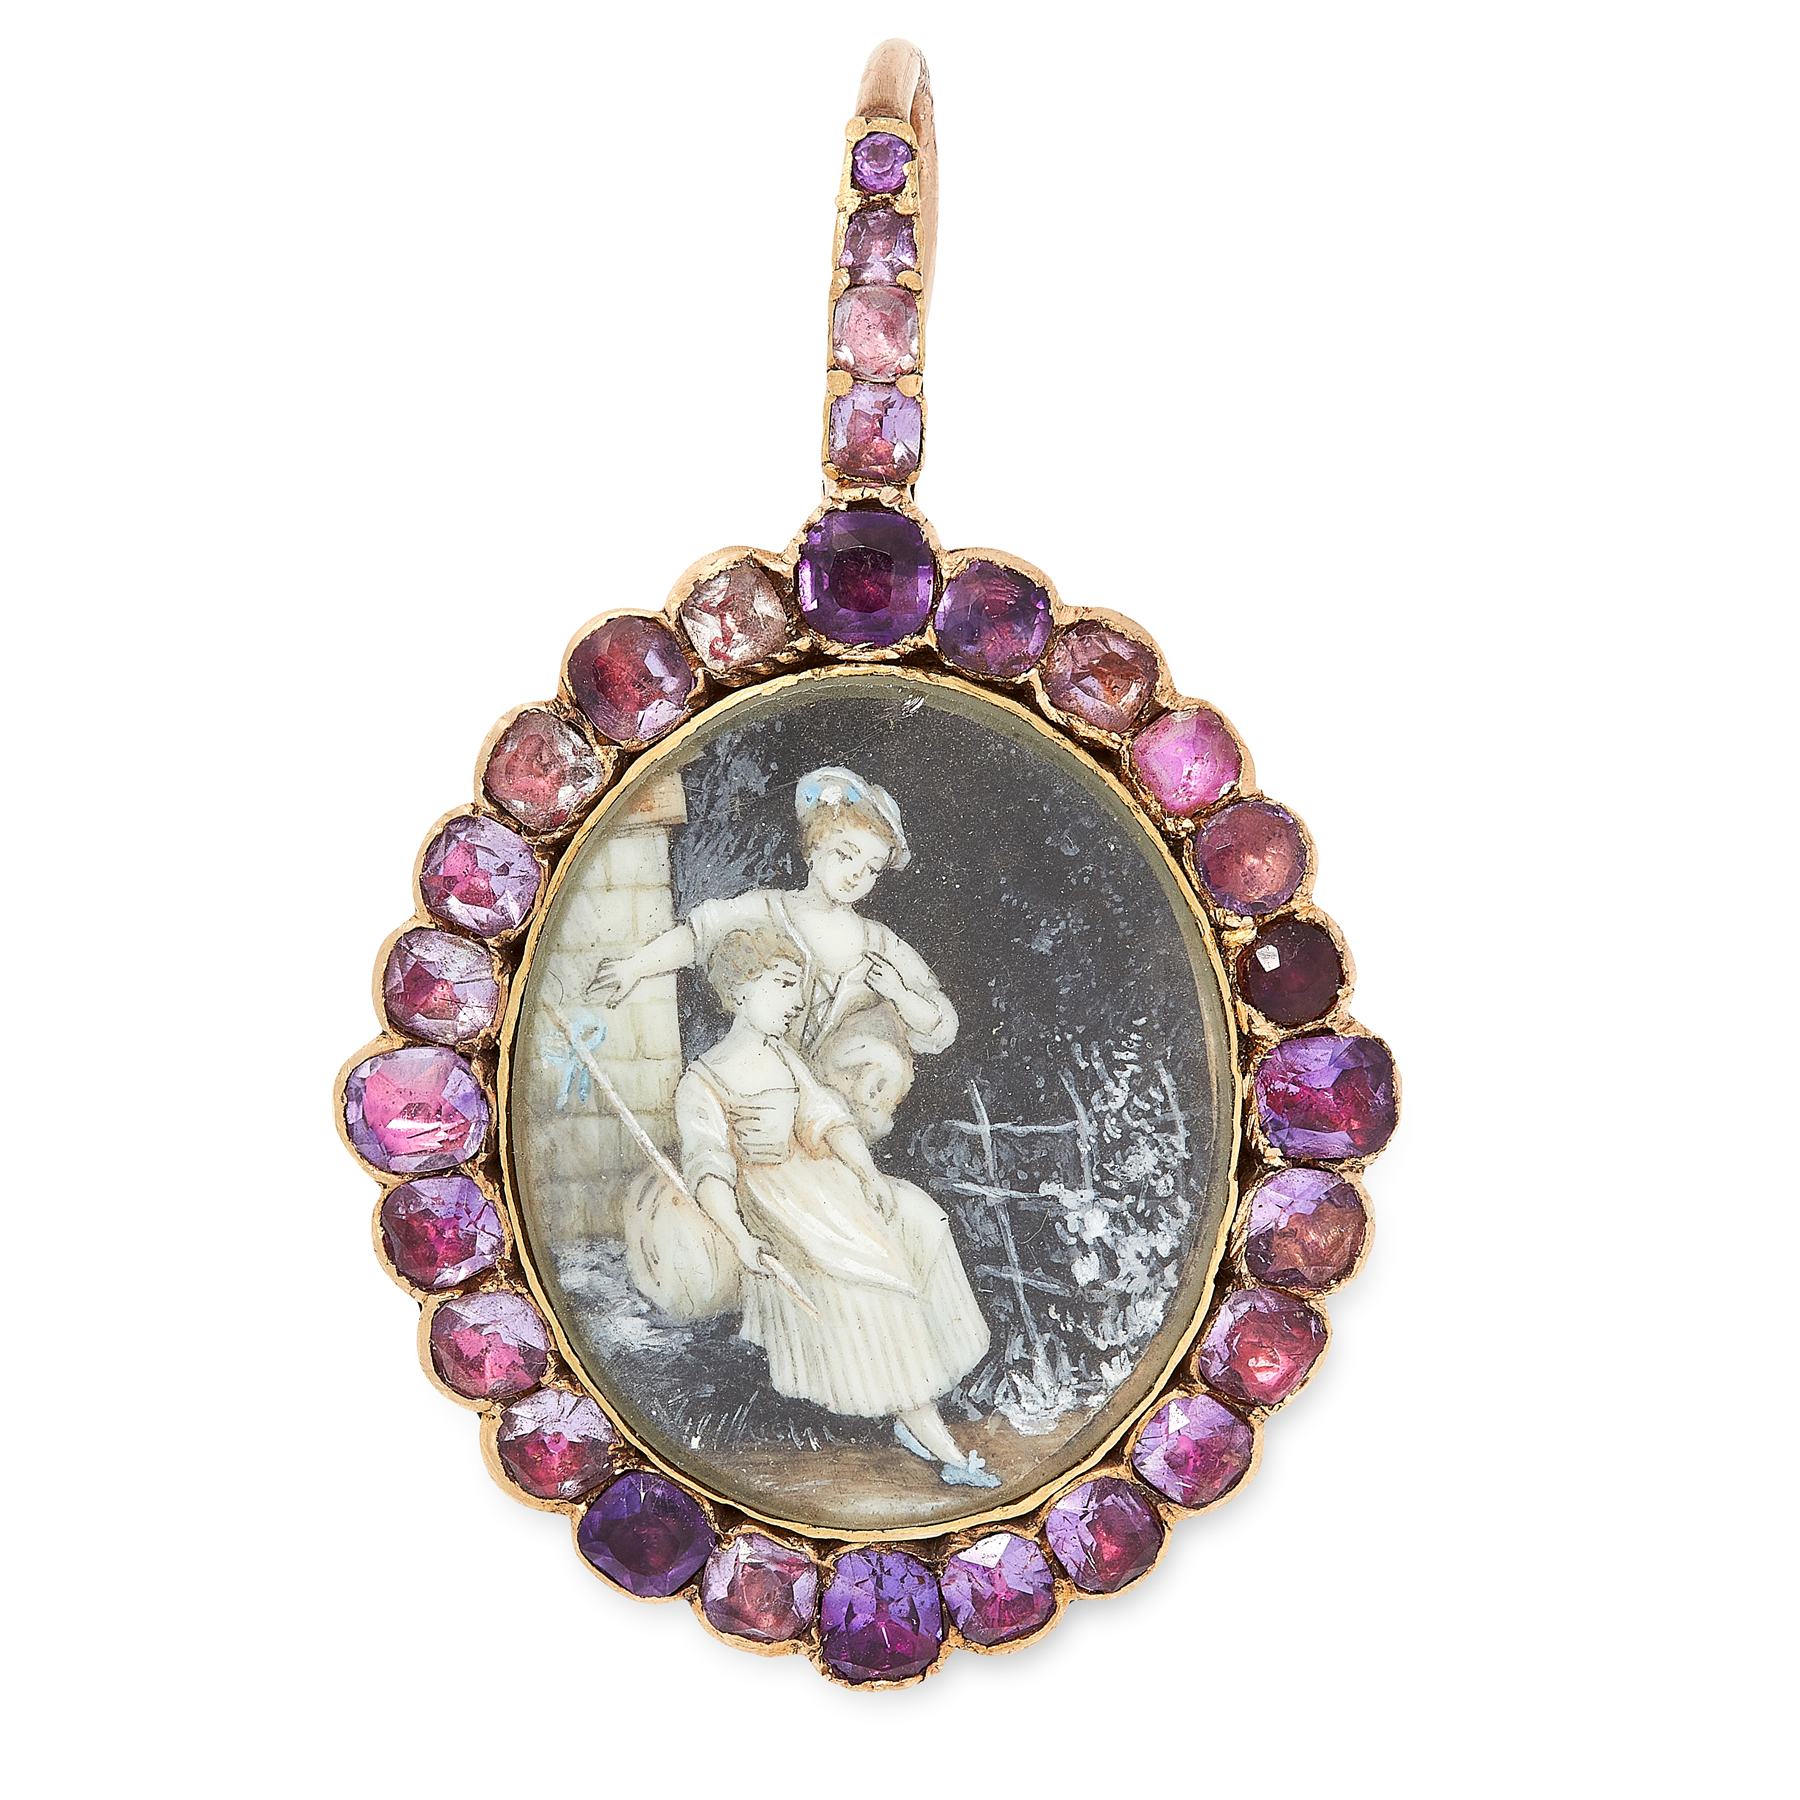 AN ANTIQUE AMETHYST PORTRAIT MINIATURE PENDANT, 19TH CENTURY in yellow gold, the oval aperture